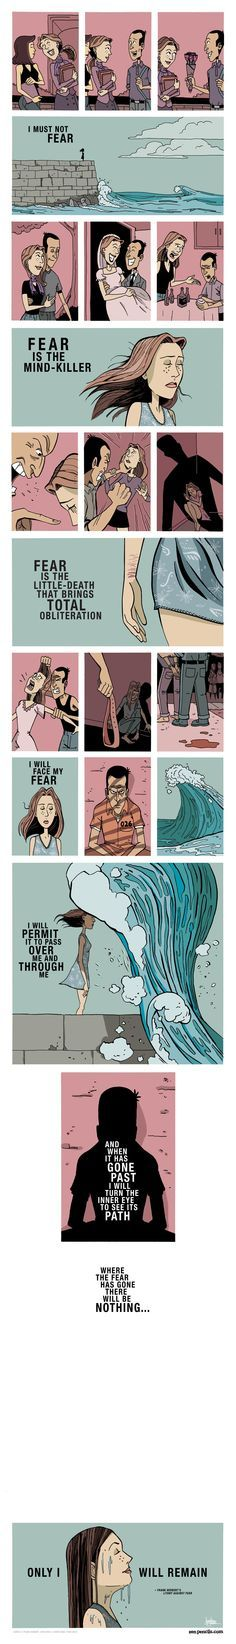 TRIGGER WARNING: A comic from Zen pencils. Based on Frank Herbert's incredible 'Litany Against Fear' from the Dune series. The Litany is an incantation used by the Bene Gesserit, a sisterhood of powerful women. Beautiful